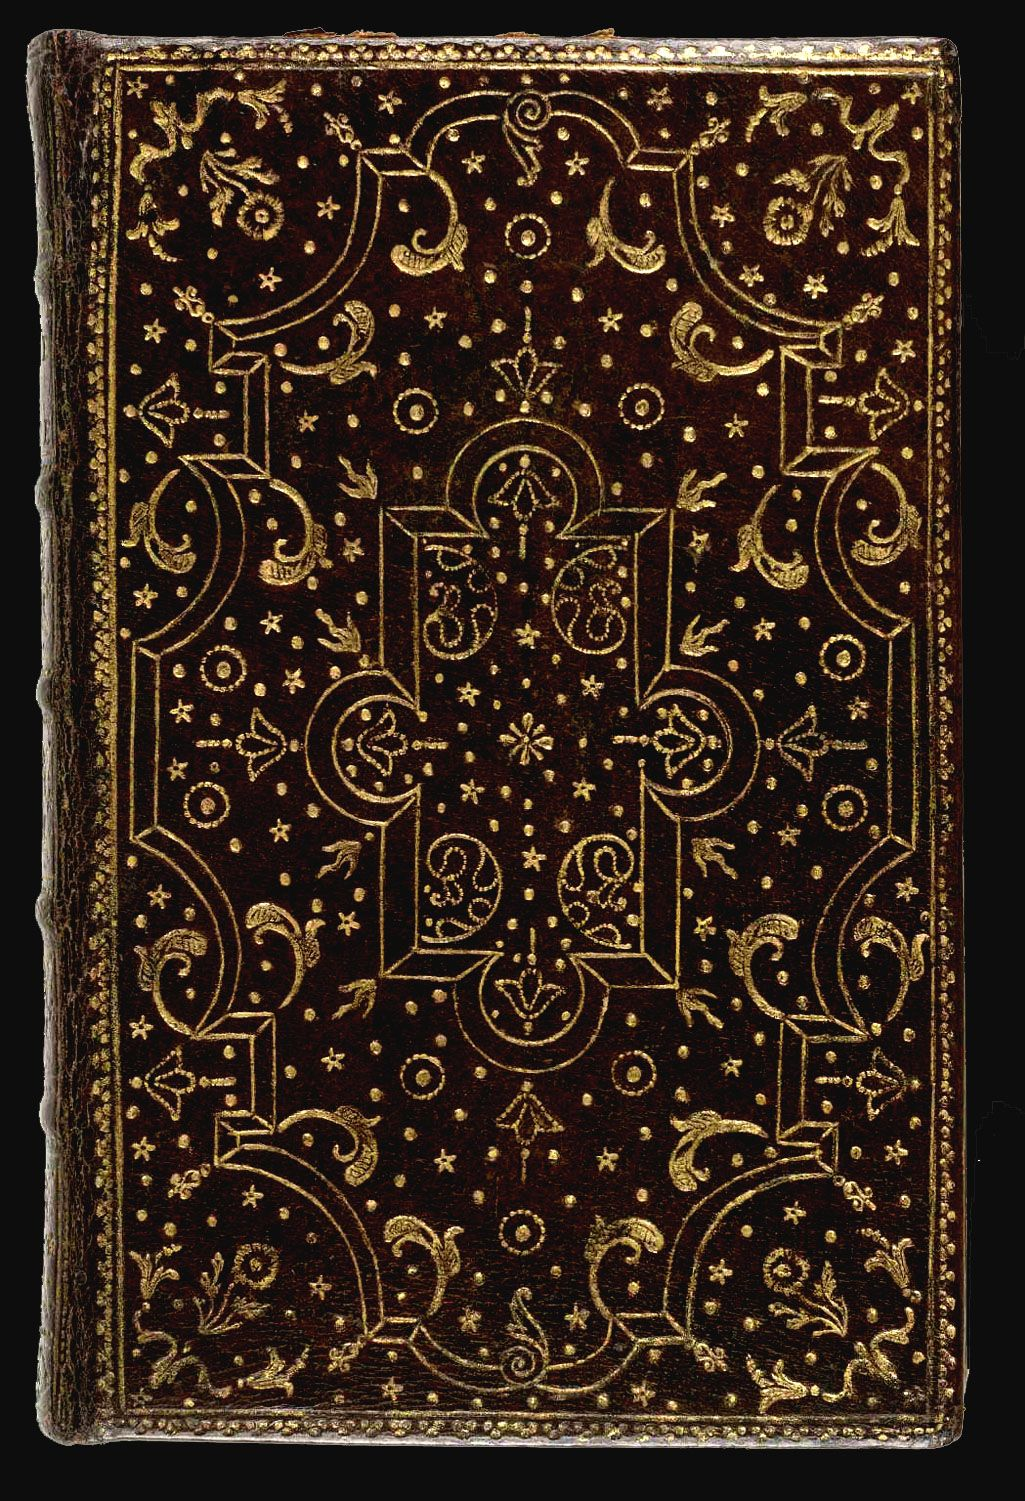 French Decorative Bookbinding